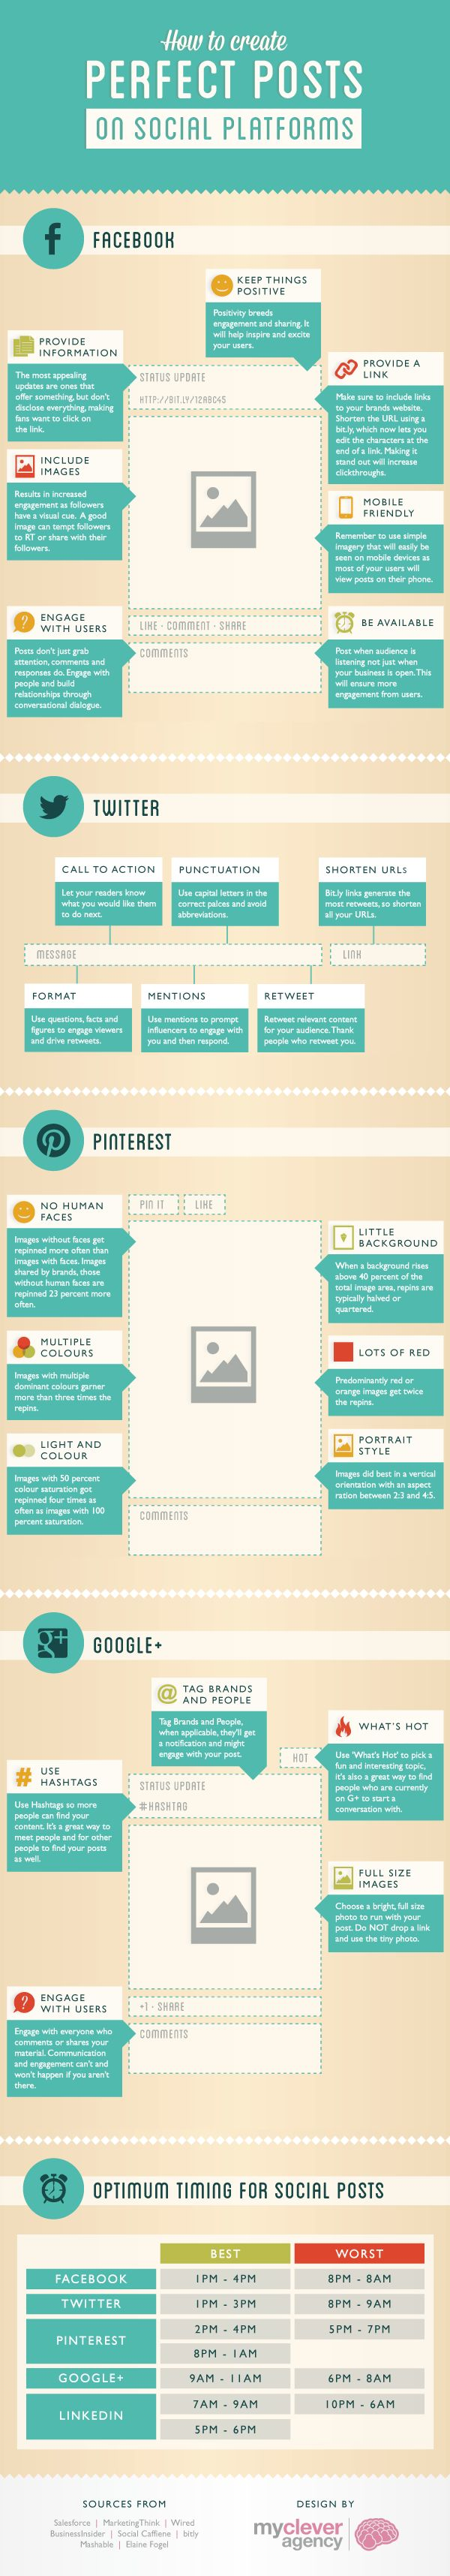 How To Create The Perfect Pinterest, Google+, Facebook & Twitter Posts [Infographic] - mycleveragency - Full Service Social